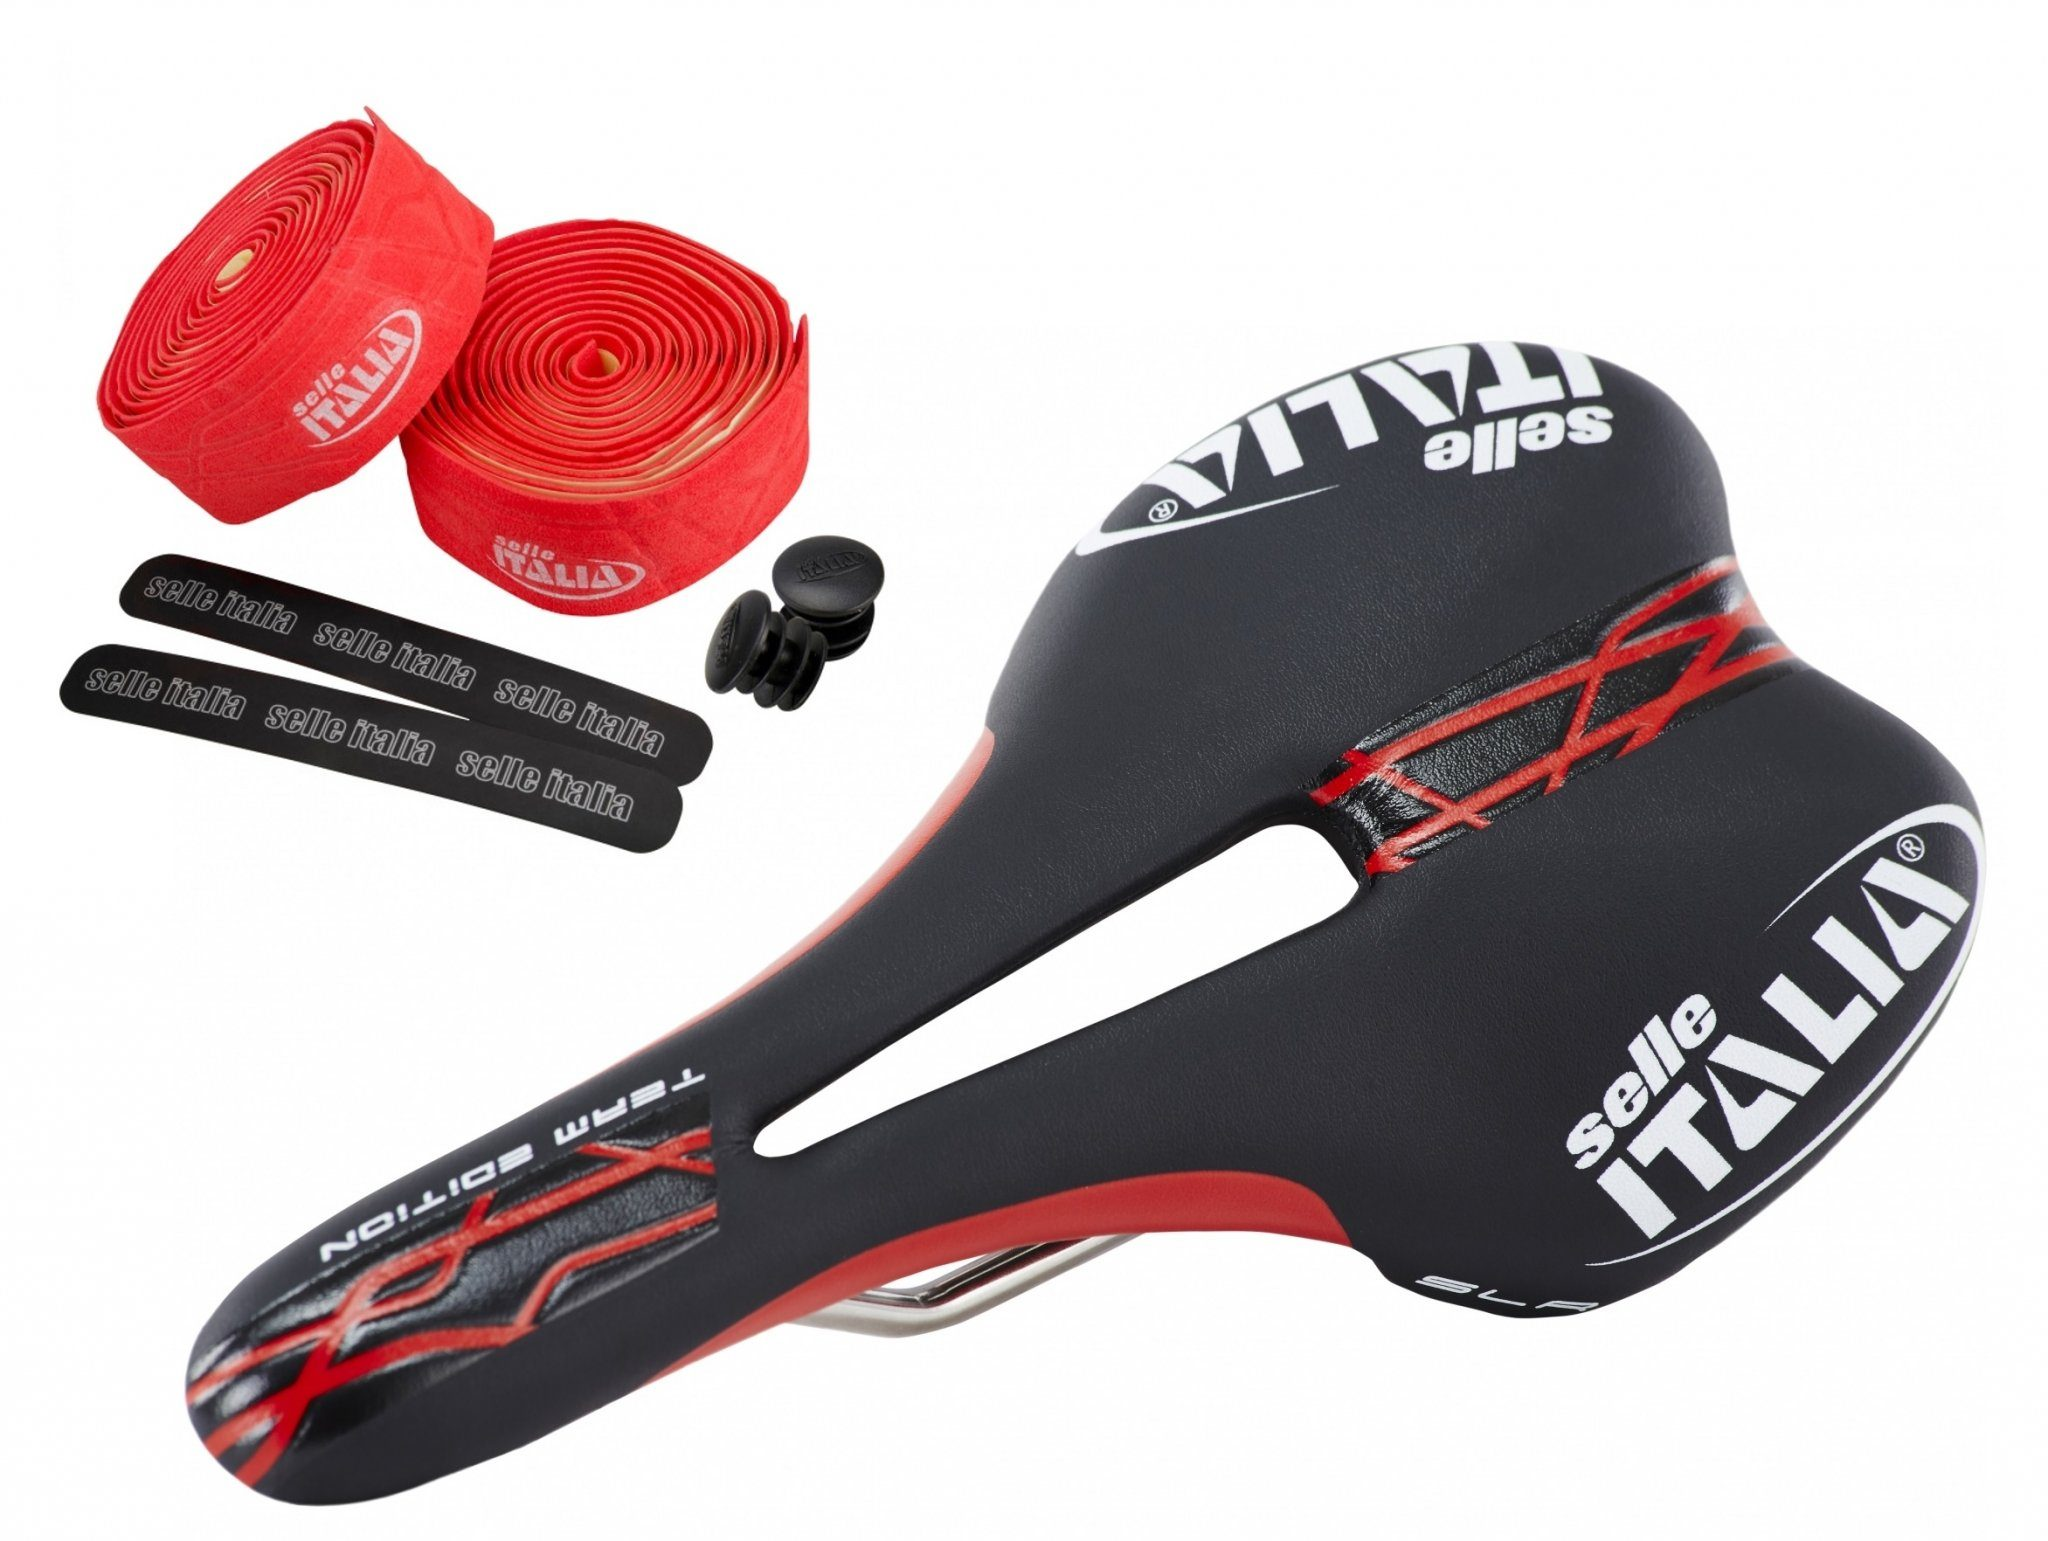 Selle Italia Fahrradsattel »SLR Team Edition Flow Set«